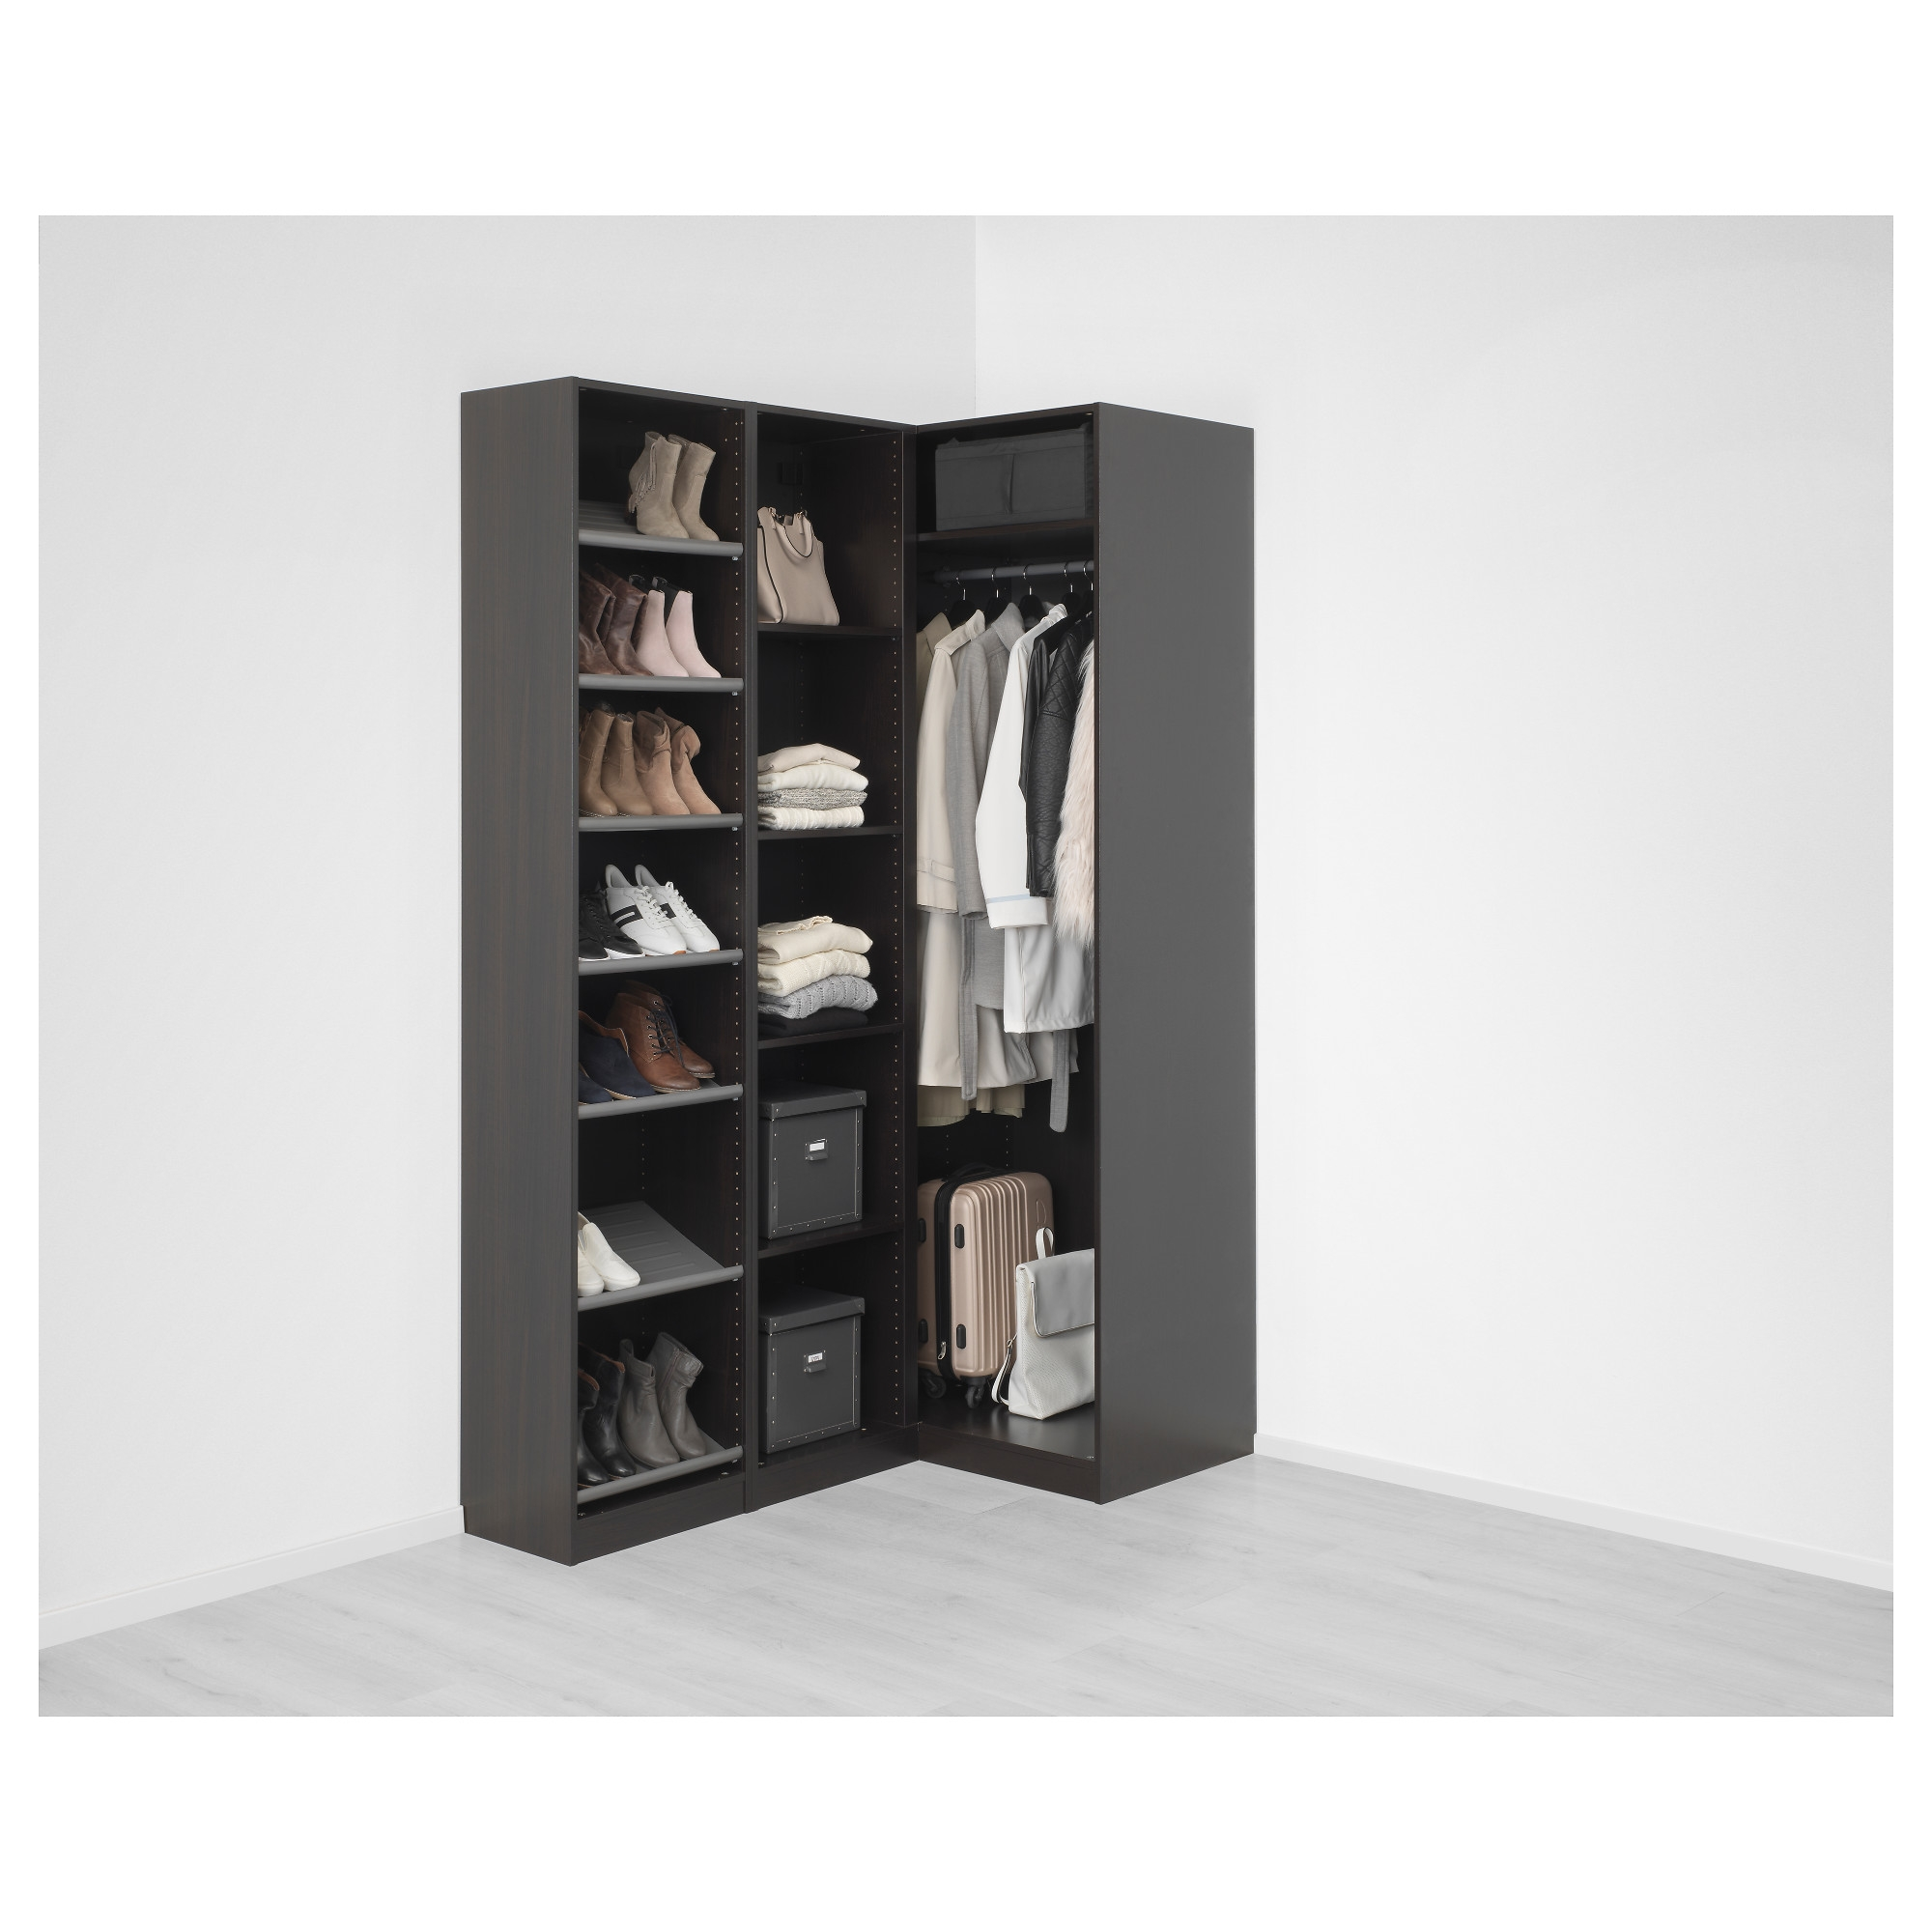 corner wardrobe closet ikea wardrobe ideas. Black Bedroom Furniture Sets. Home Design Ideas